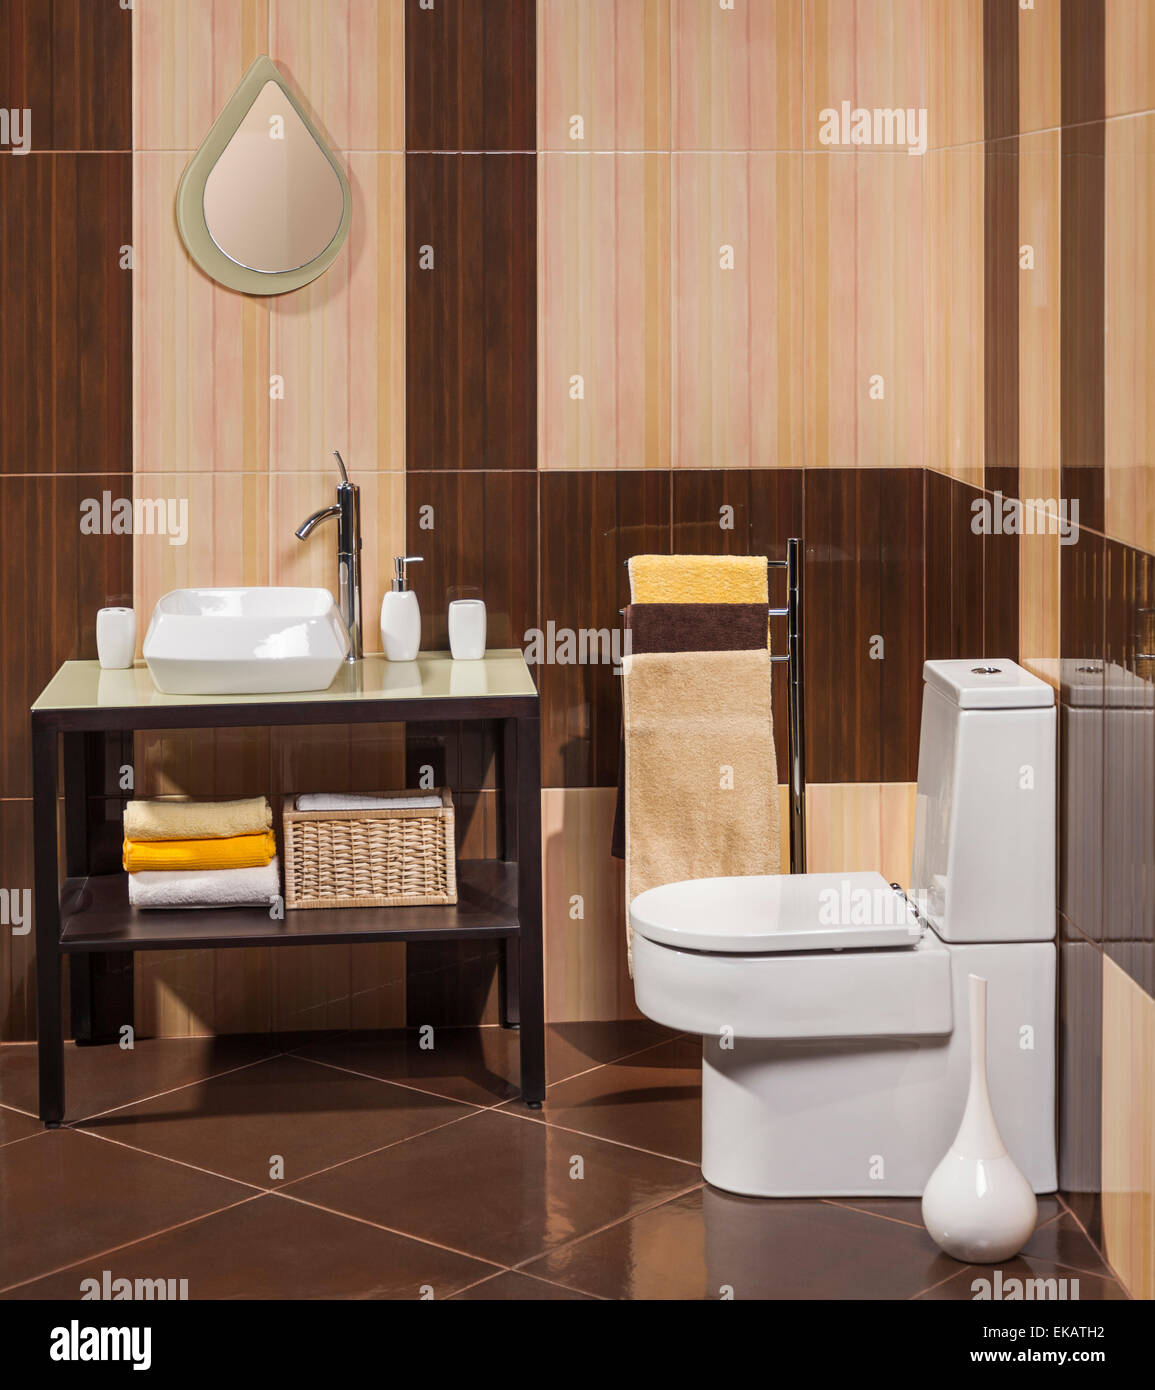 detail of a modern bathroom with sink, toilet and towel - Stock Image